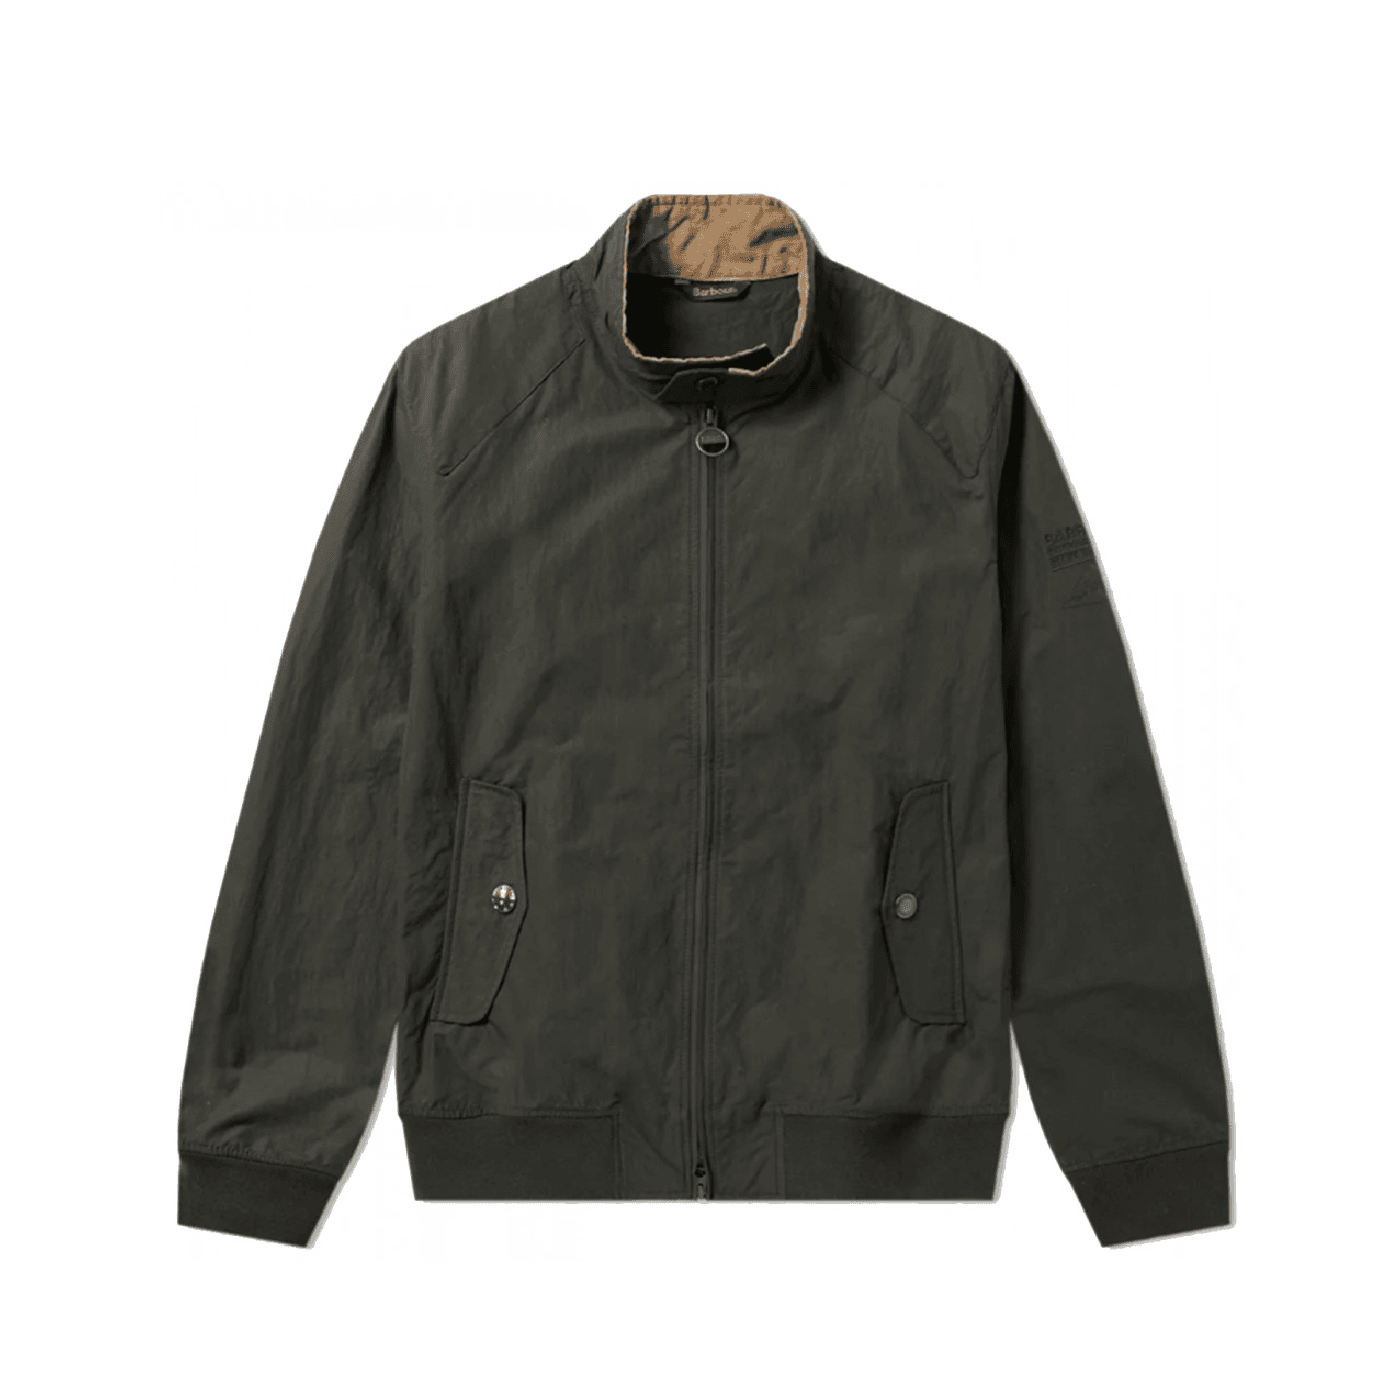 Blouson Barbour harrington rectifier olive